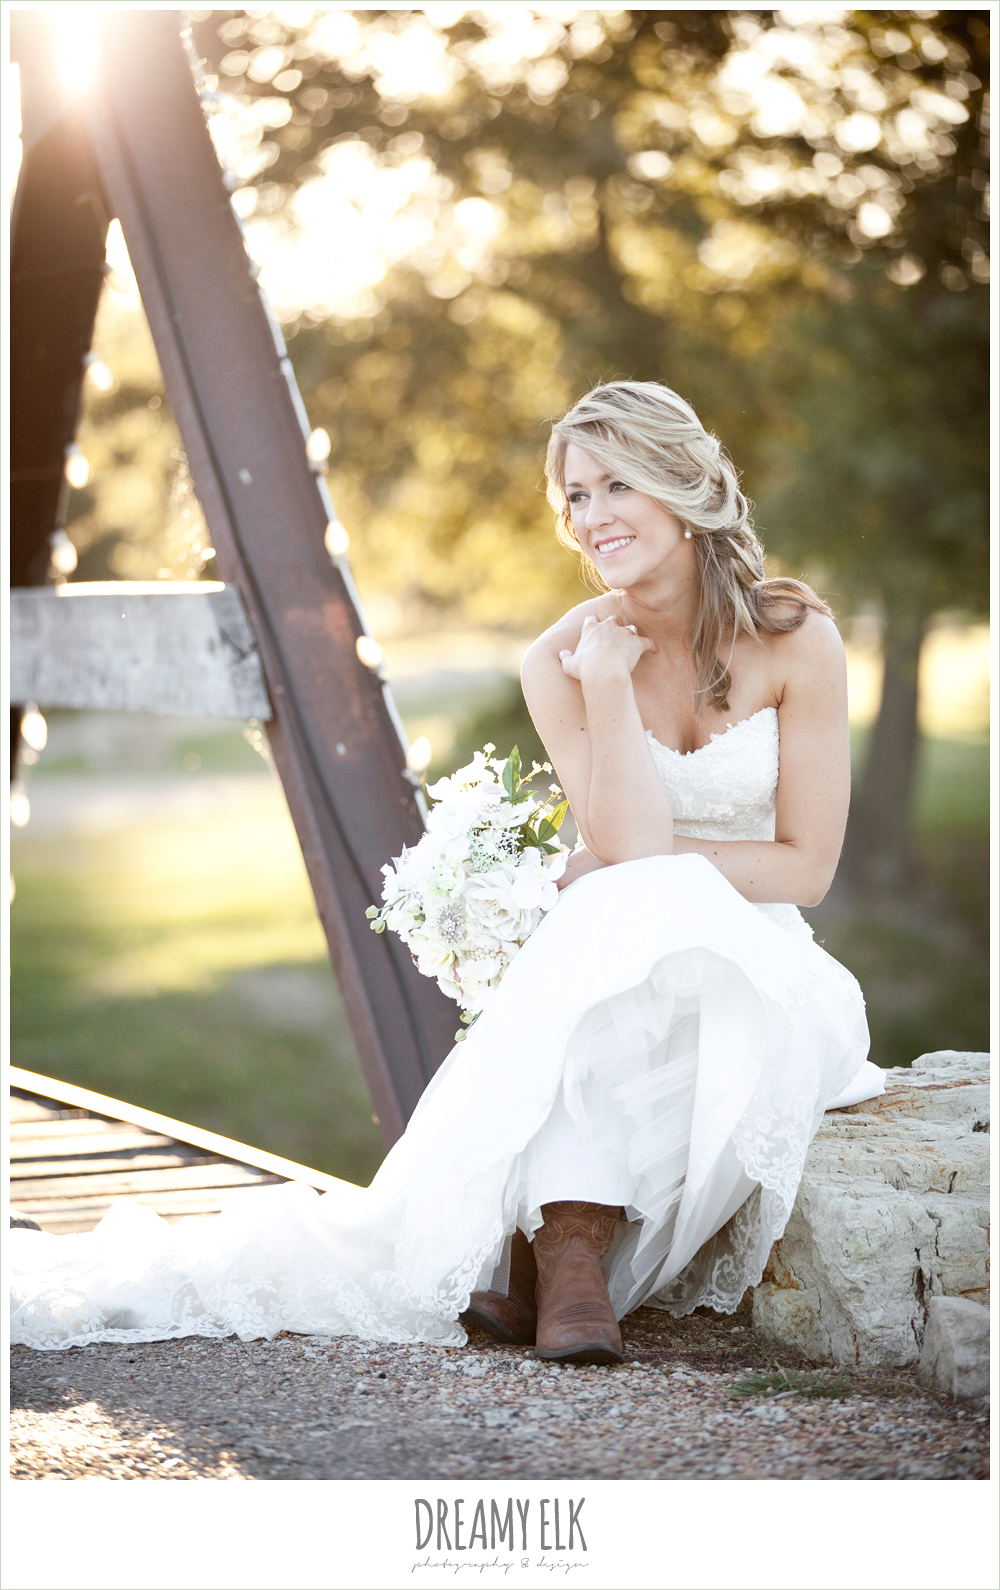 lauren, rock lake ranch, rustic fall bridal photos with cowboy boots, dreamy elk photography and design